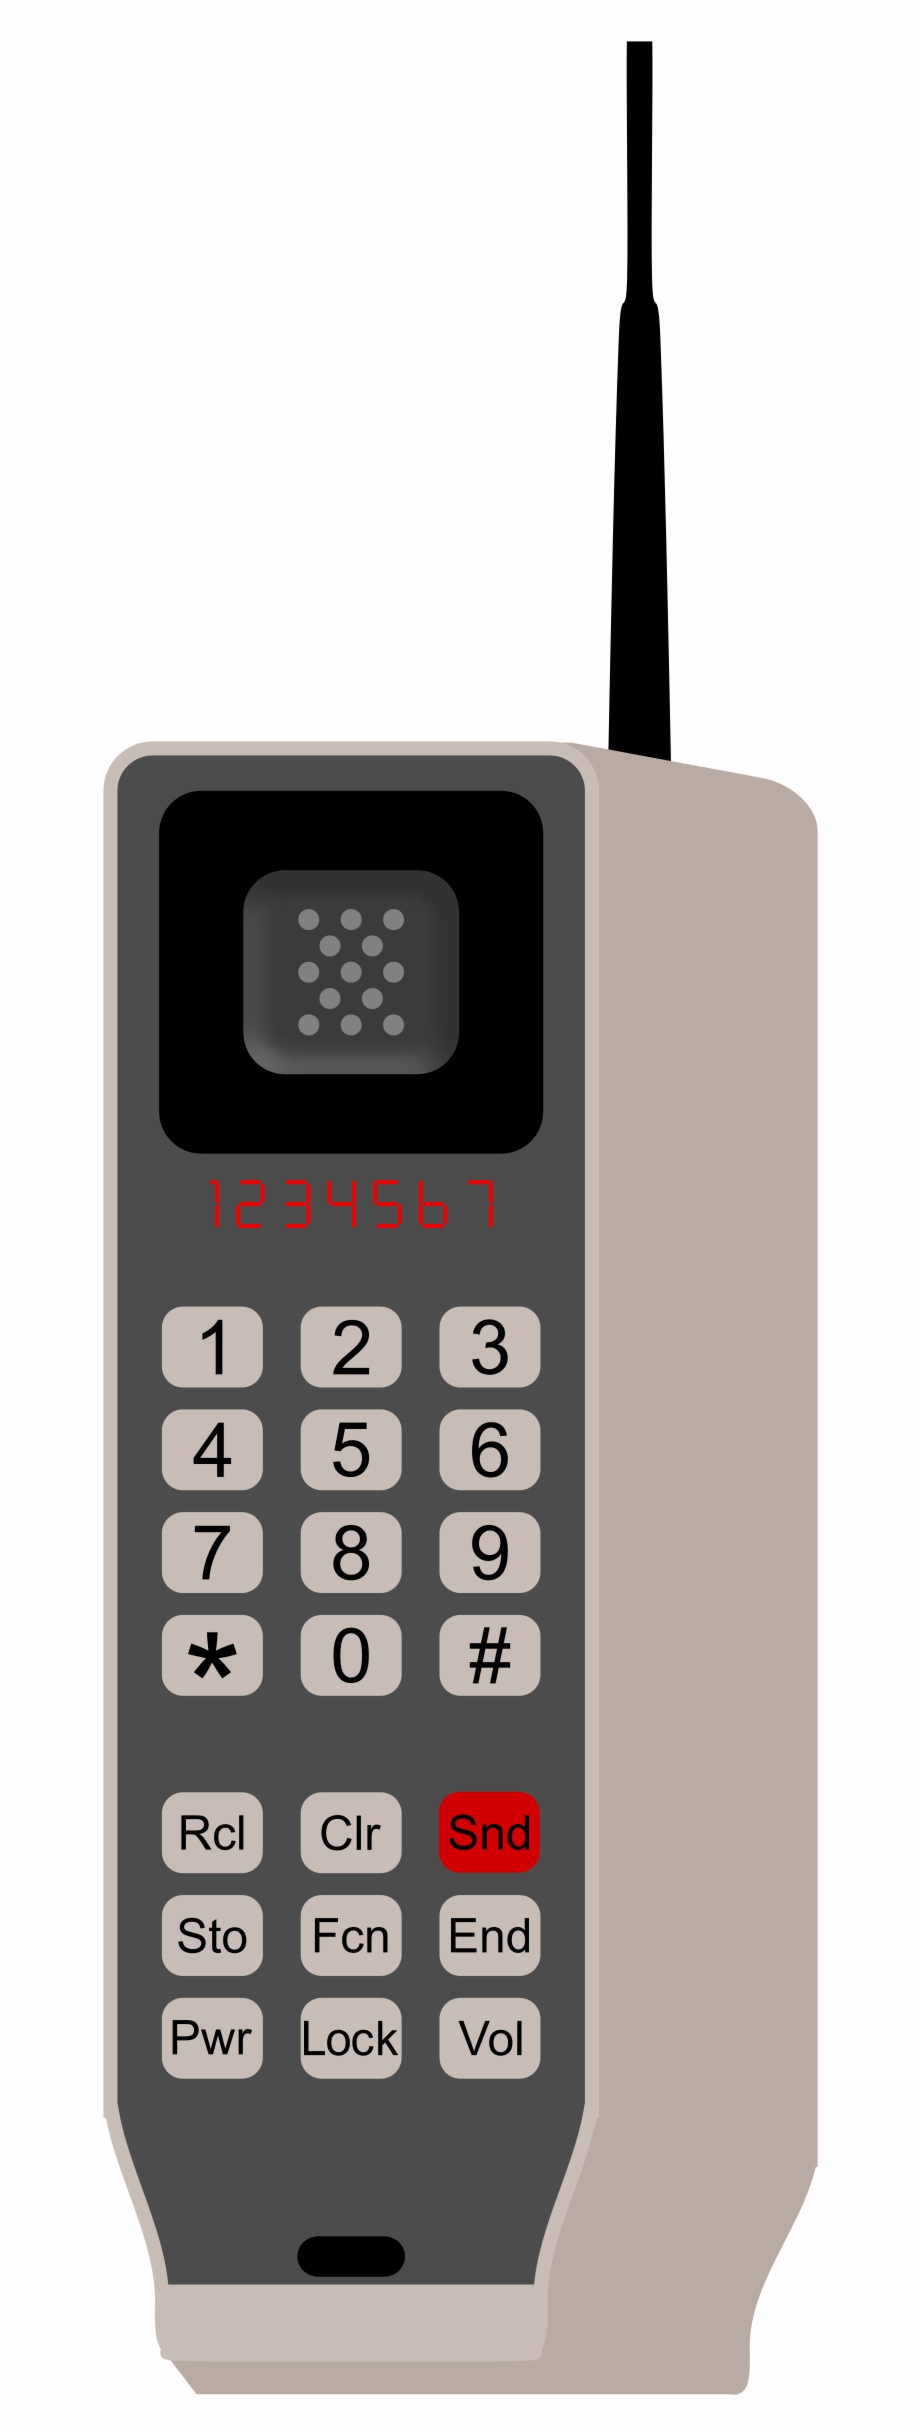 This Free Icons Png Design Of Brick Phone.